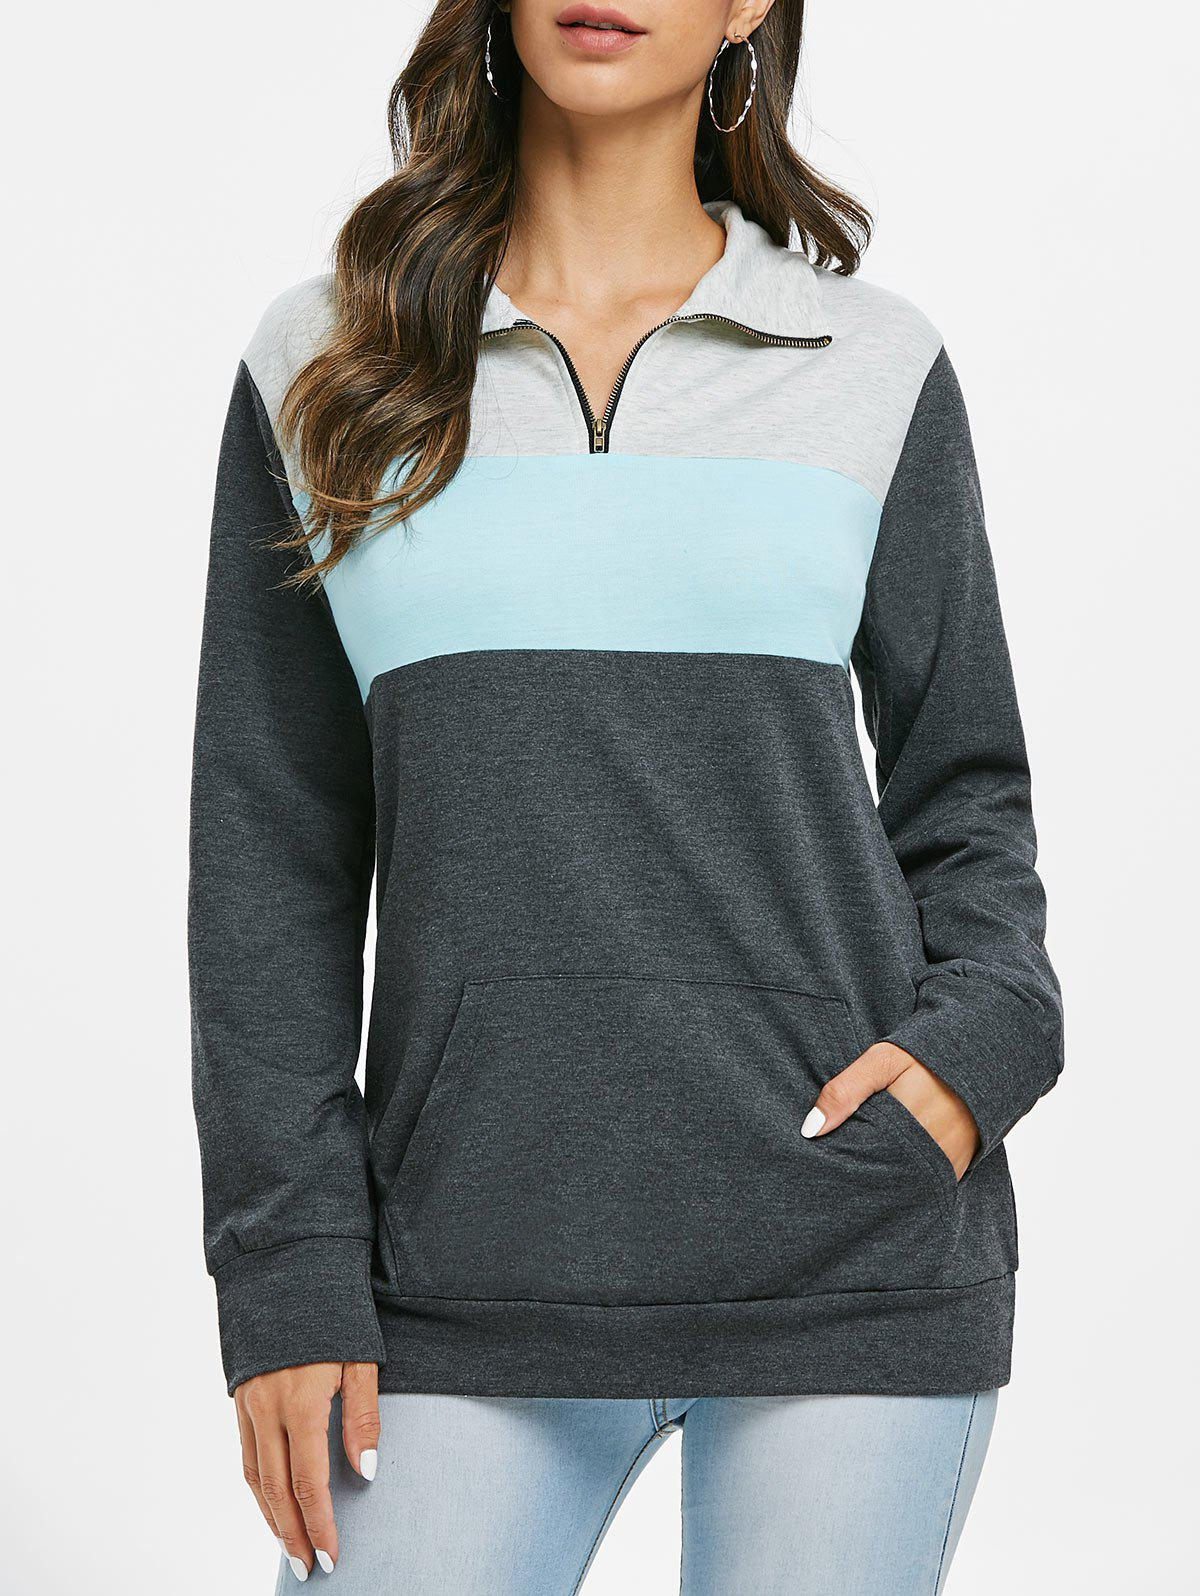 Front Zip Color Block Kangaroo Pocket Sweatshirt - multicolor M